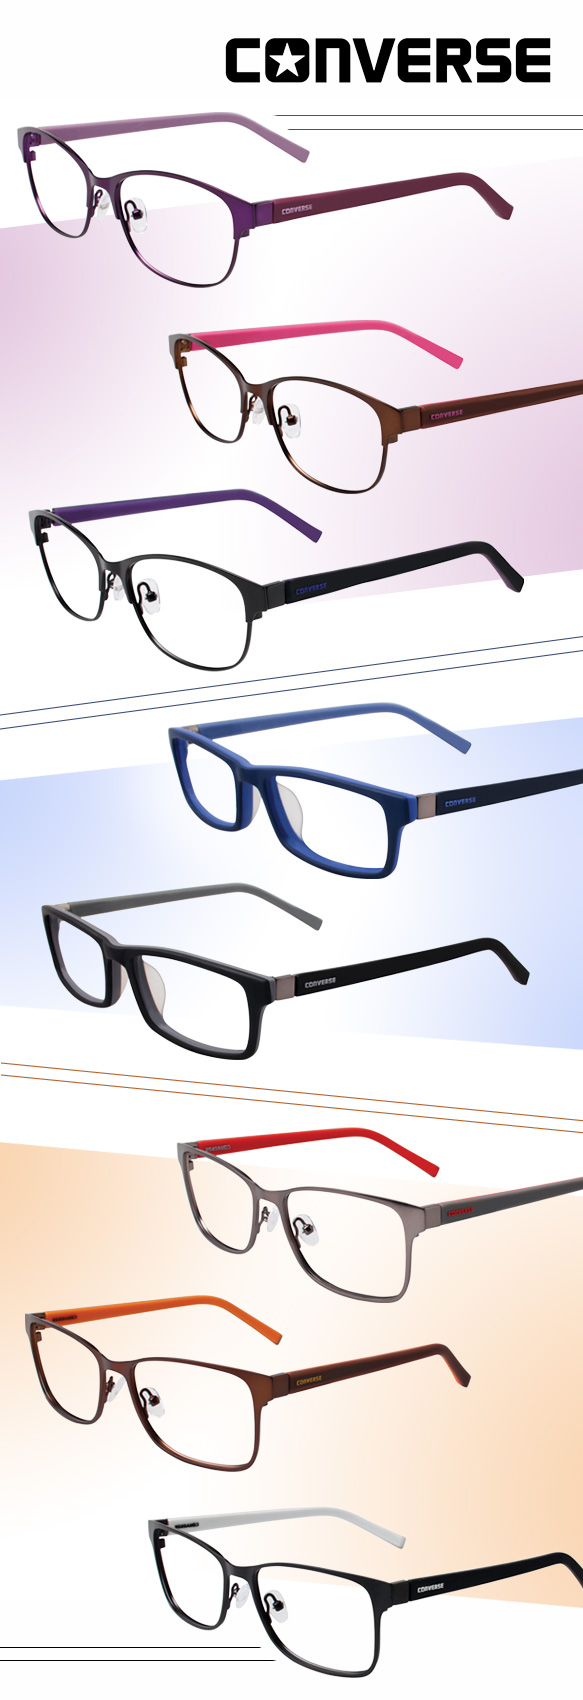 Converse All Star Eyewear (Q044), Converse All Star Eyewear (Q039), Converse All Star Eyewear (Q038) in varying colorations